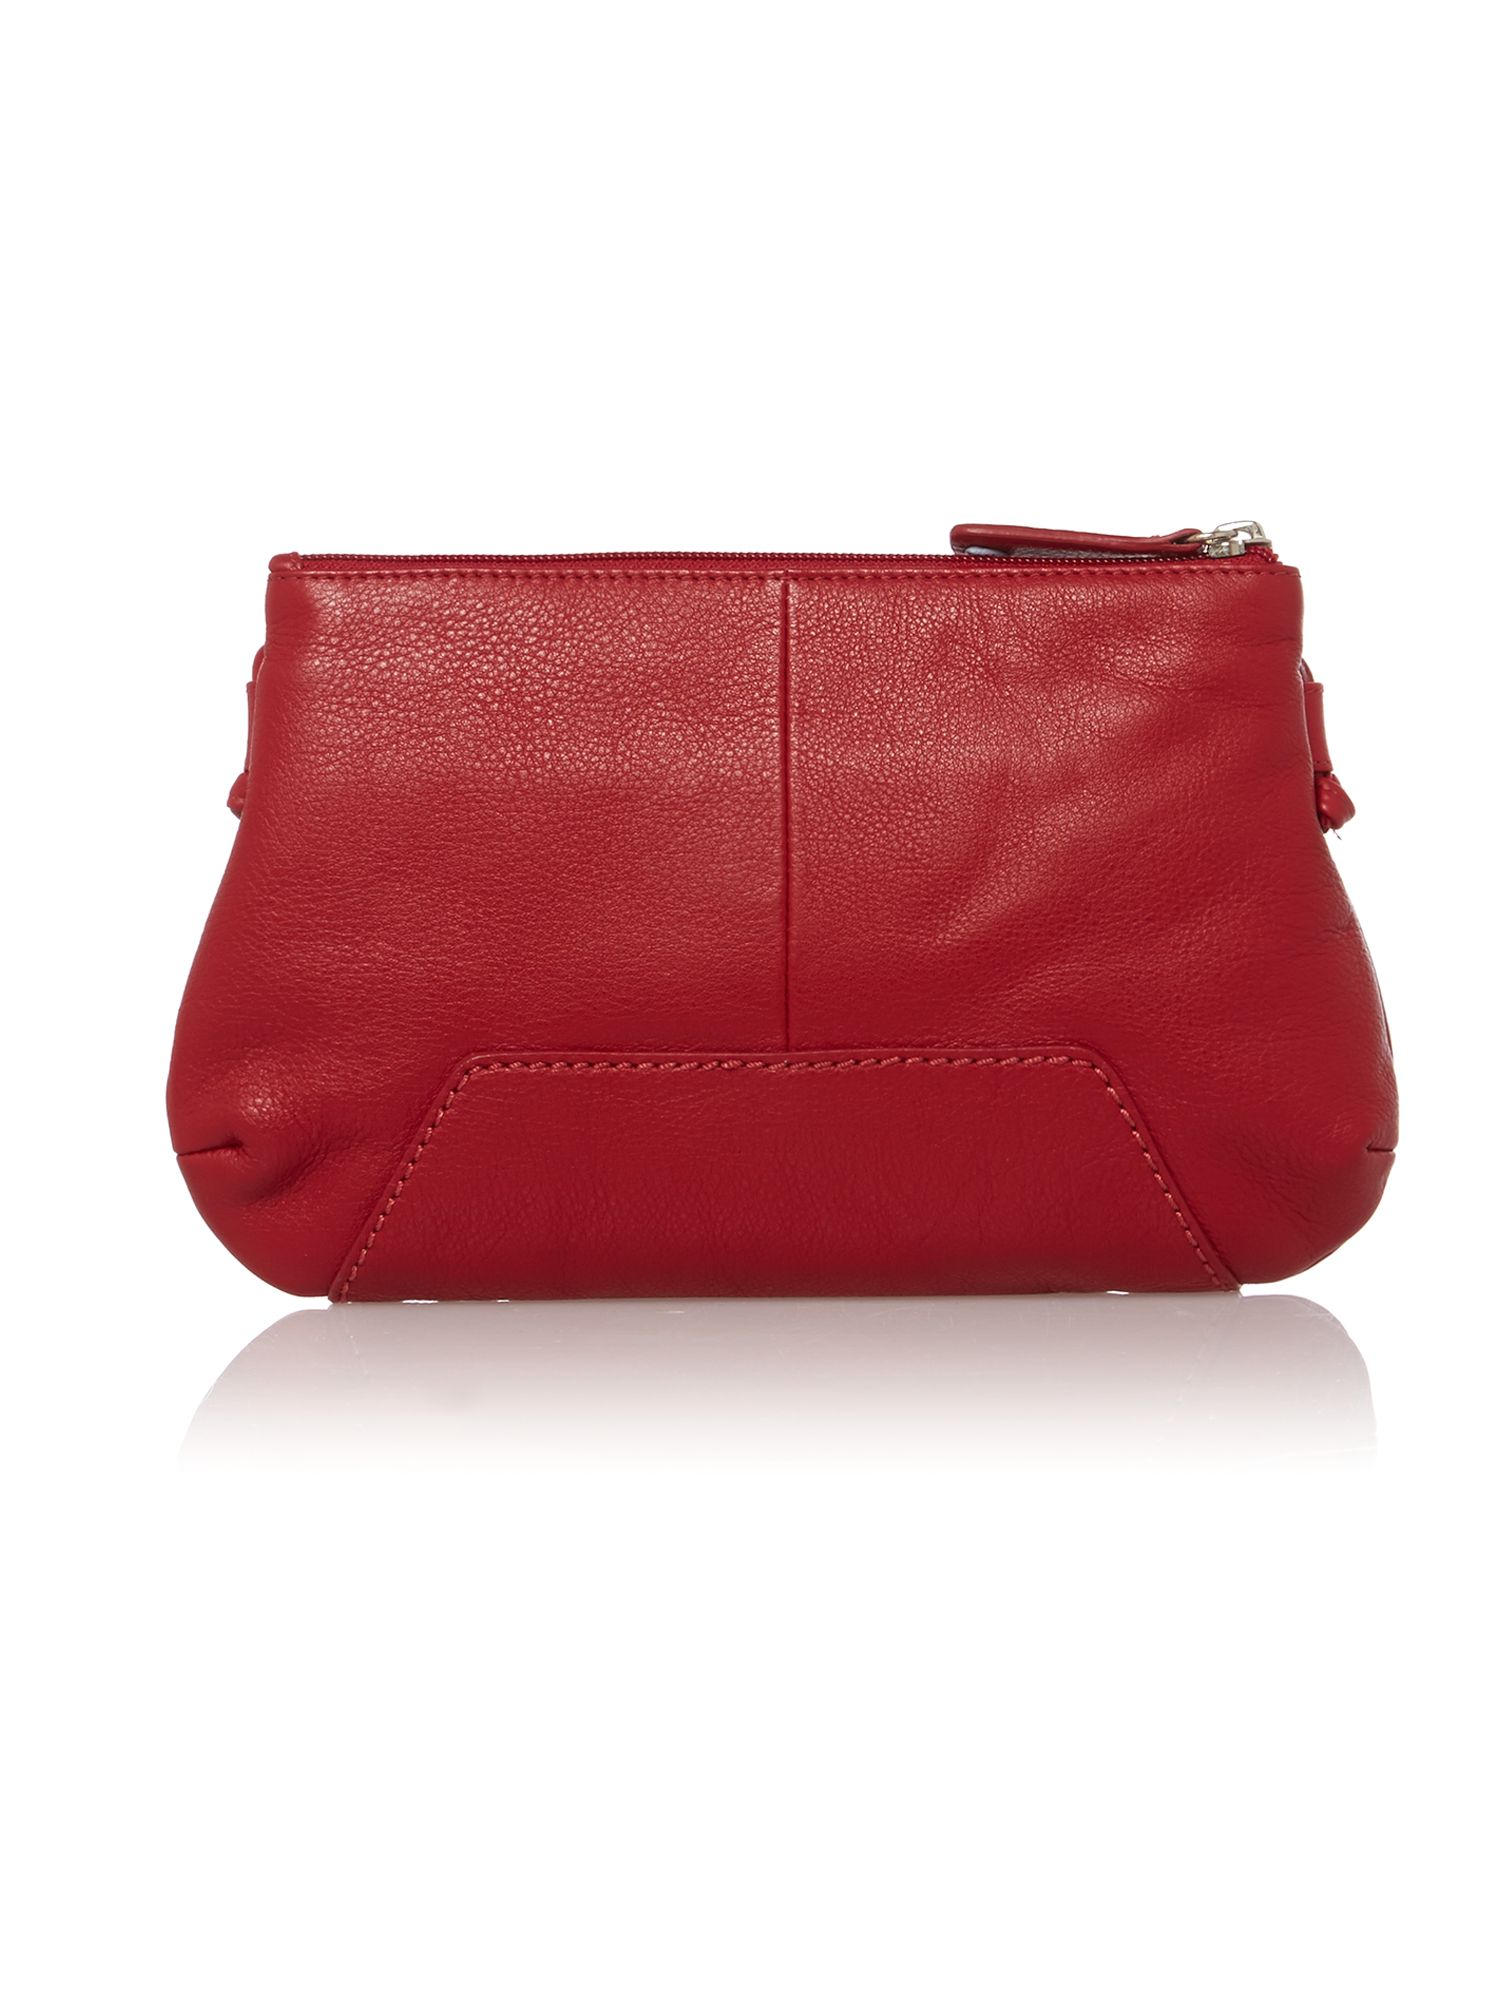 Finsbury small red ziptop xbody leather bag